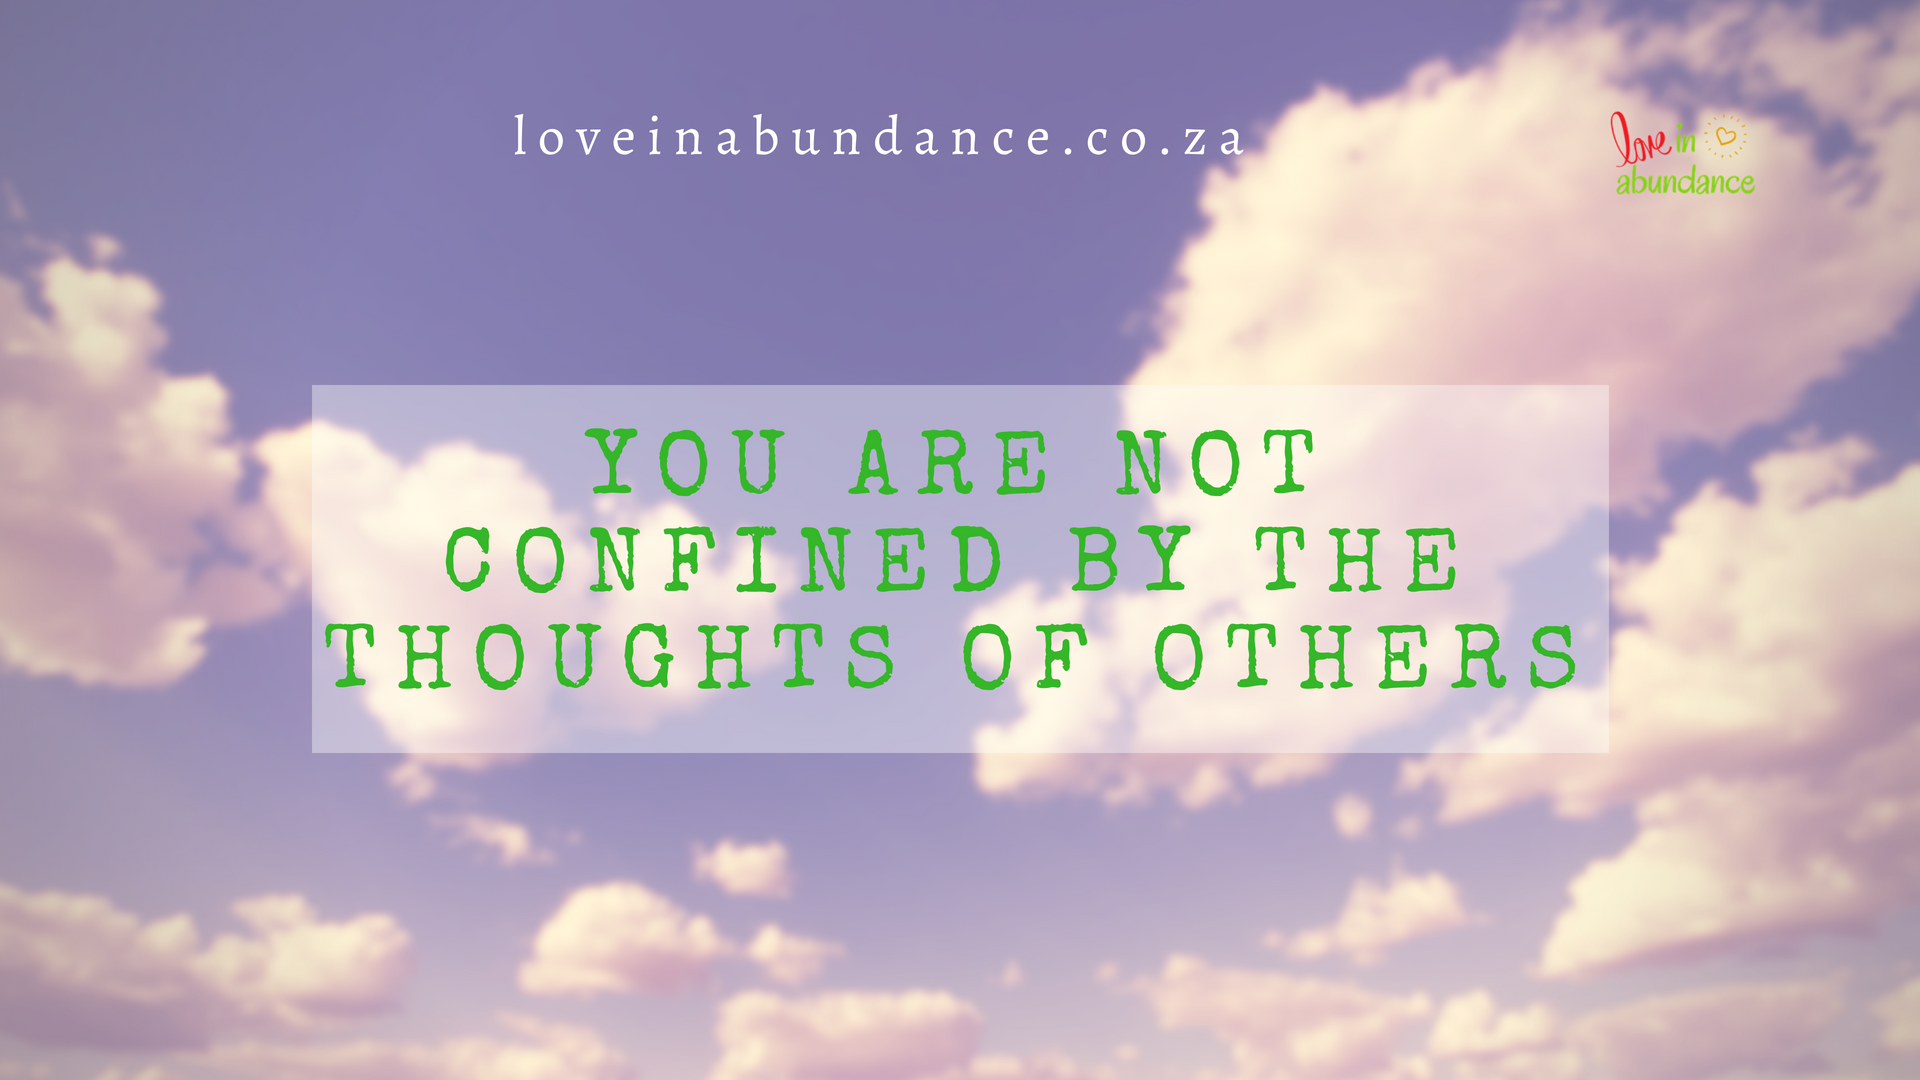 You are not confined by the thoughts of others banner